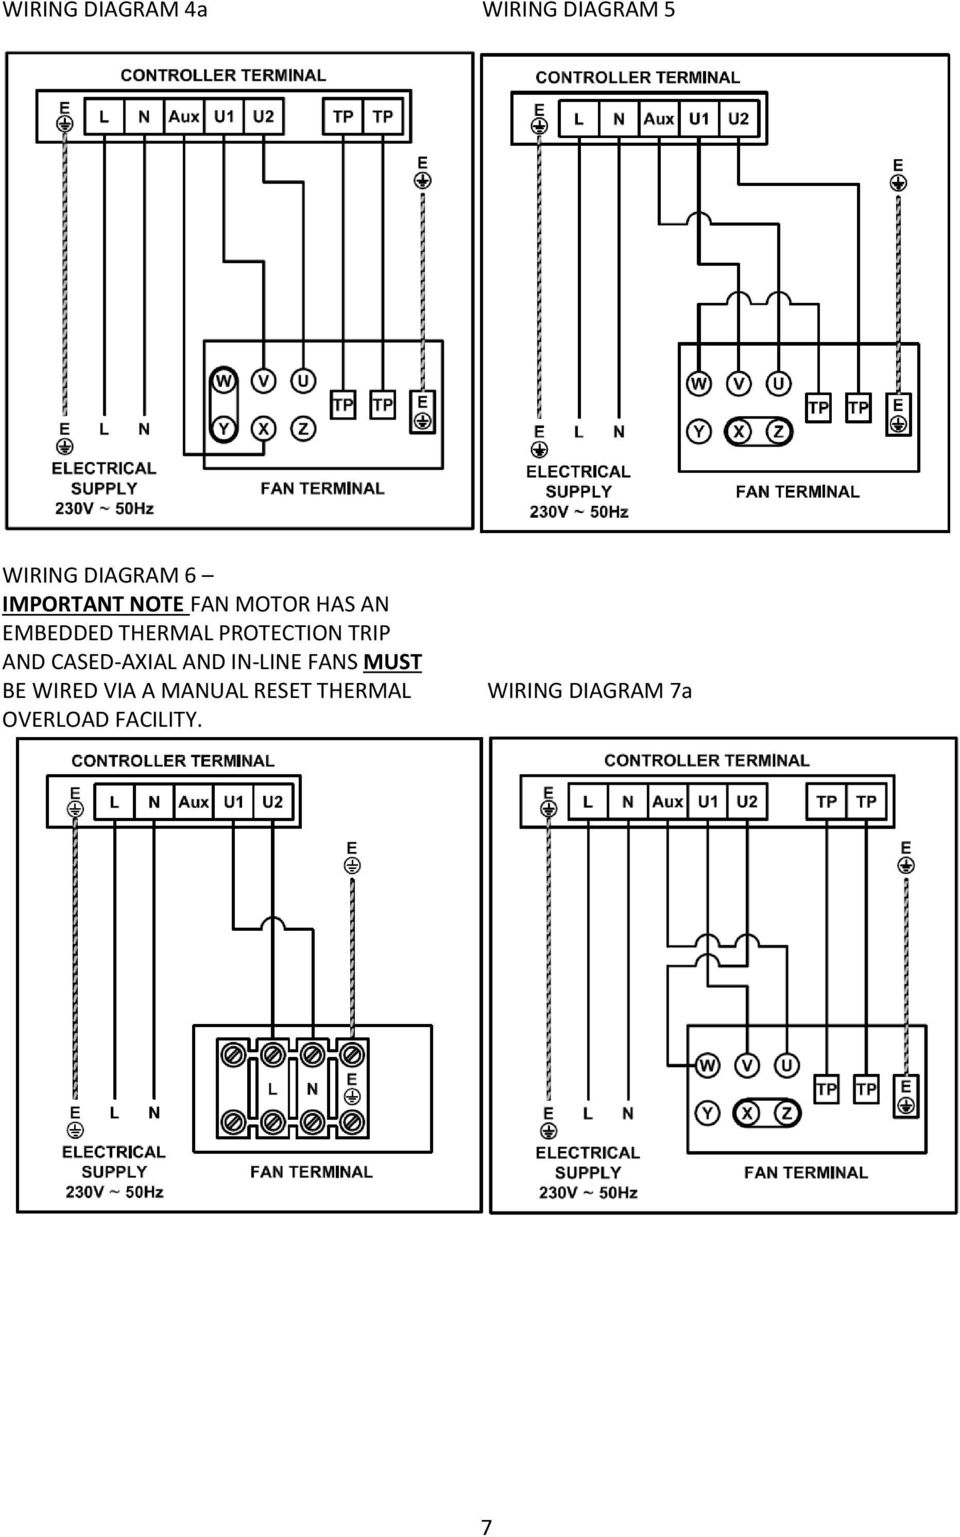 Reb 1 3 5 6 8 10 12 16 Pdf How To Wire A Light Switch Wiring Diagram Besides Speed Fan Motor 7a 7 Protection Trip And Cased Axial In Line Fans Must Be